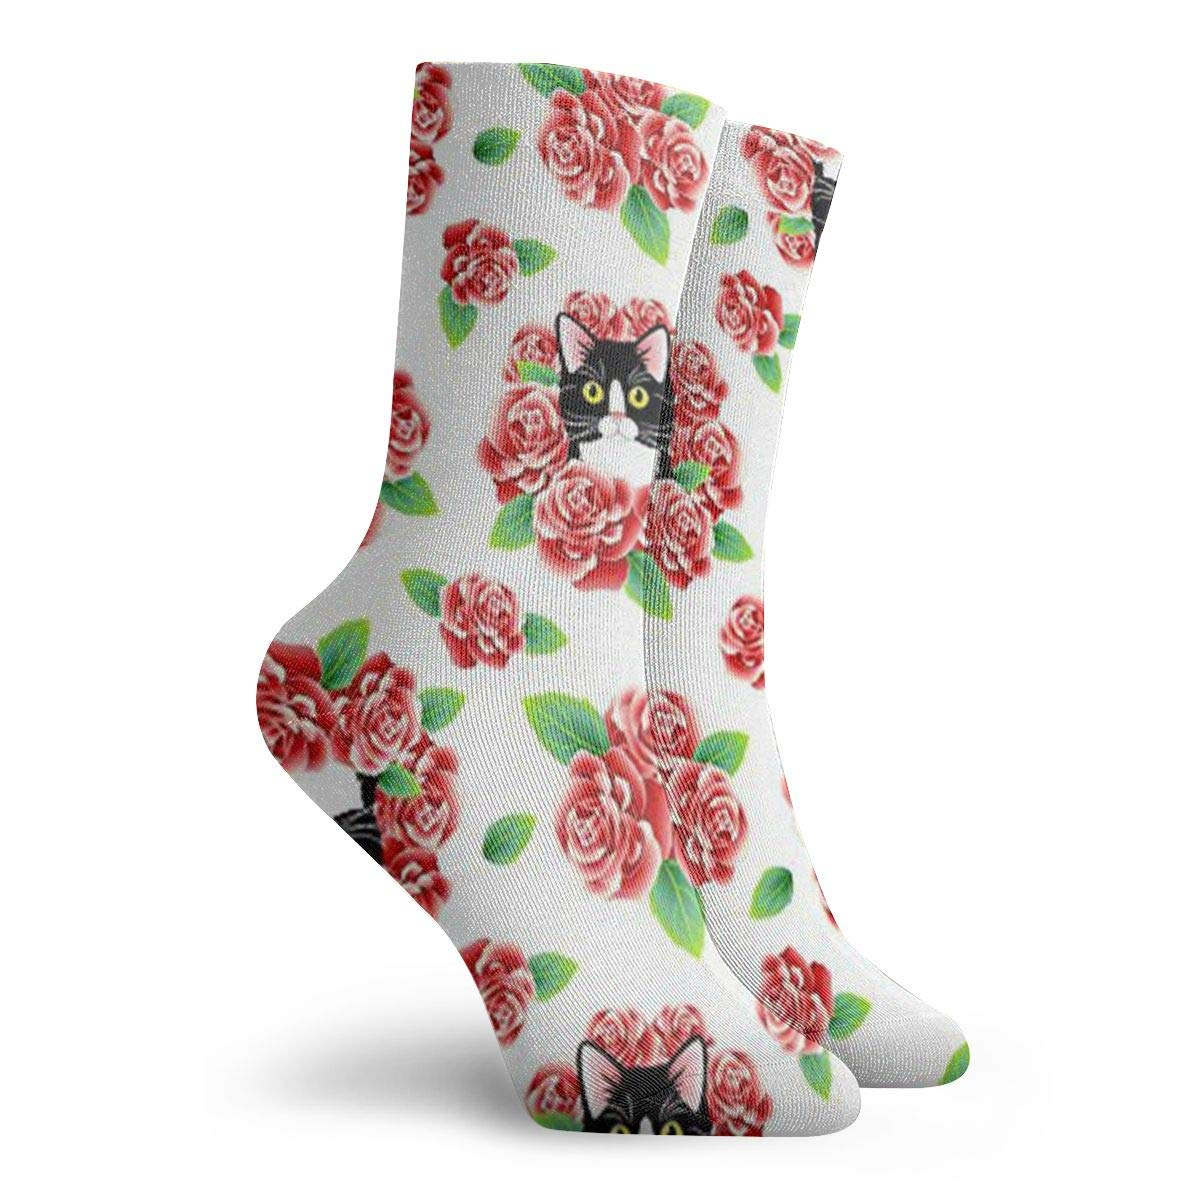 Cat In The Bush Unisex Funny Casual Crew Socks Athletic Socks For Boys Girls Kids Teenagers